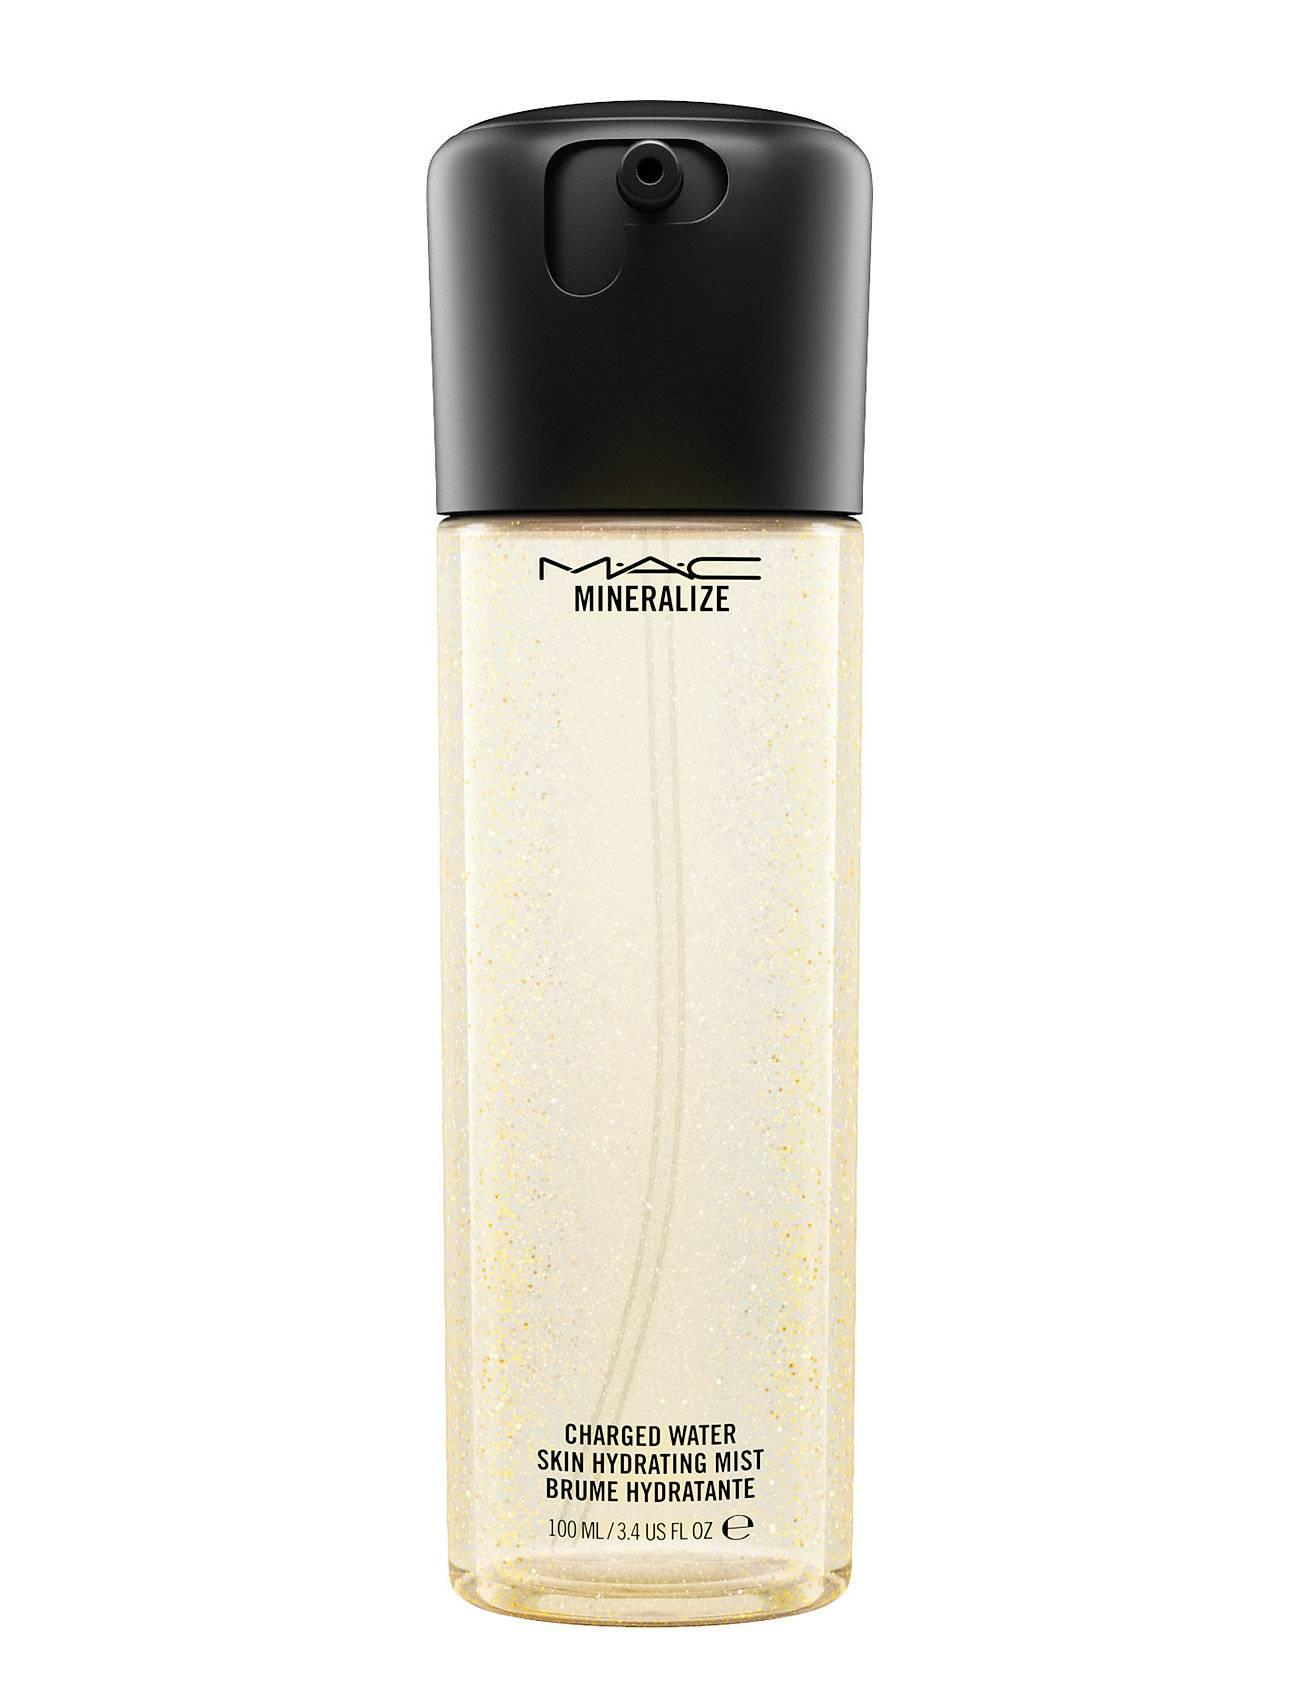 M.A.C. Skincare - Other Mineralize Charged Water Revitalizing Energ